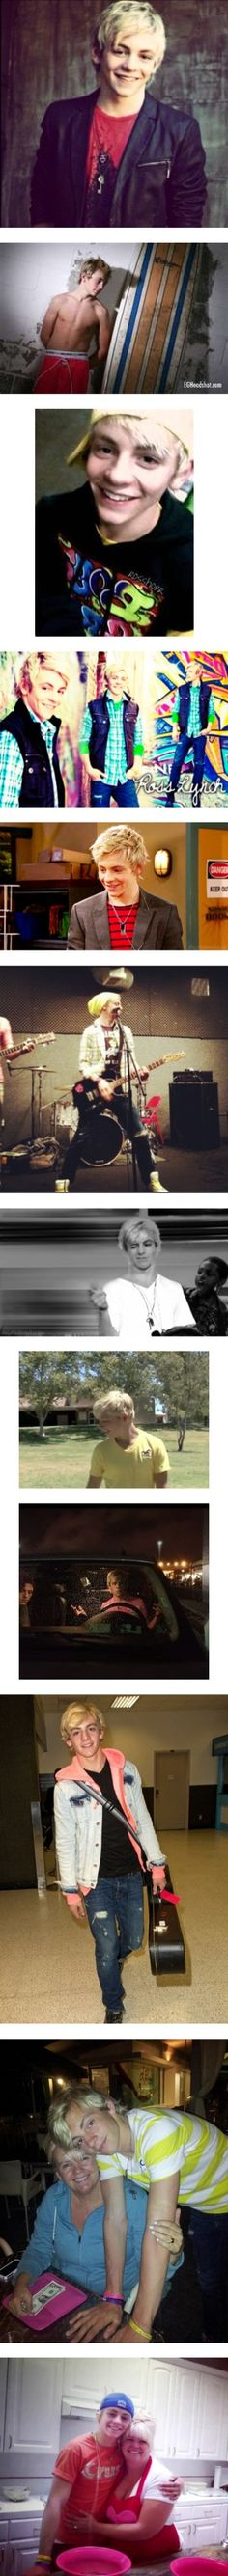 """""""ross lynch"""" by janiris-sanchez ❤ liked on Polyvore"""